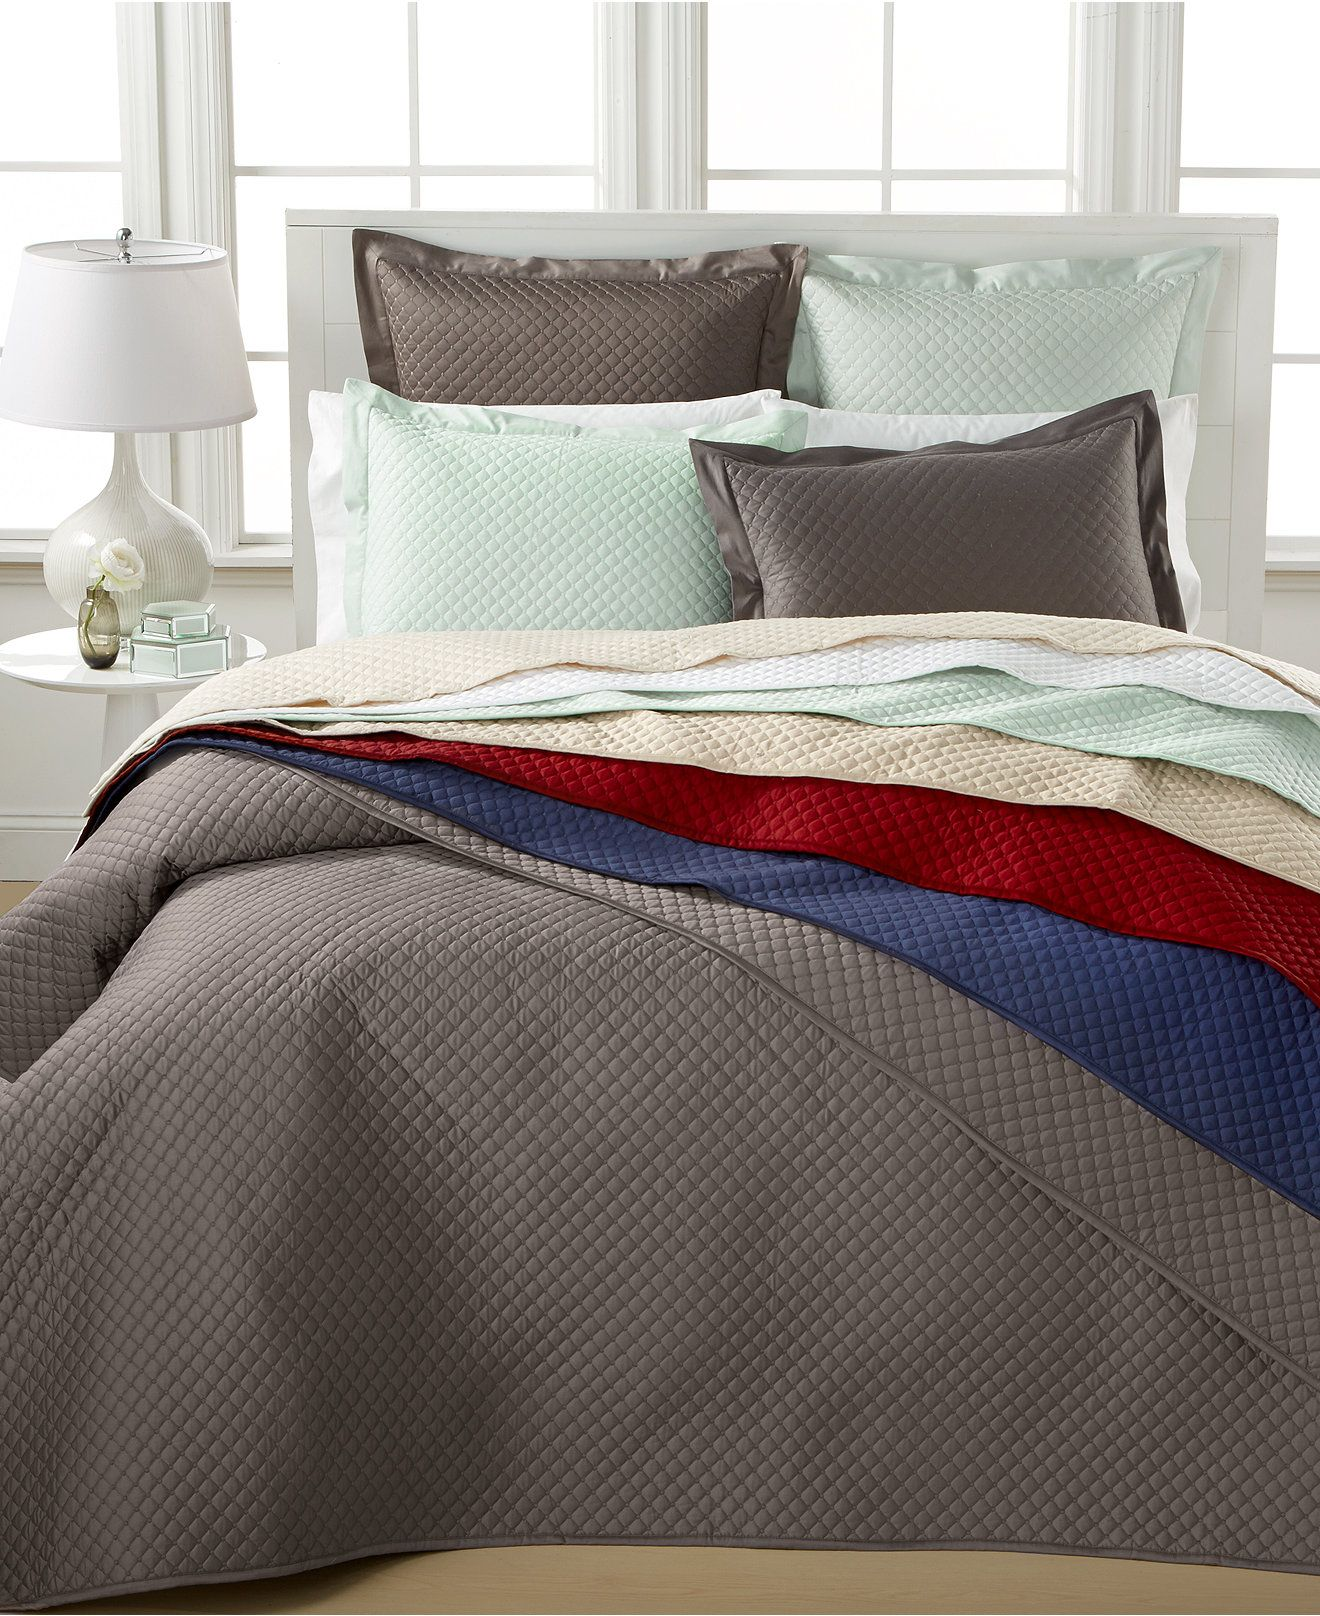 Closeout! Charter Club Damask Quilted King 3-Pc. Coverlet Set ... : coverlet vs quilt - Adamdwight.com